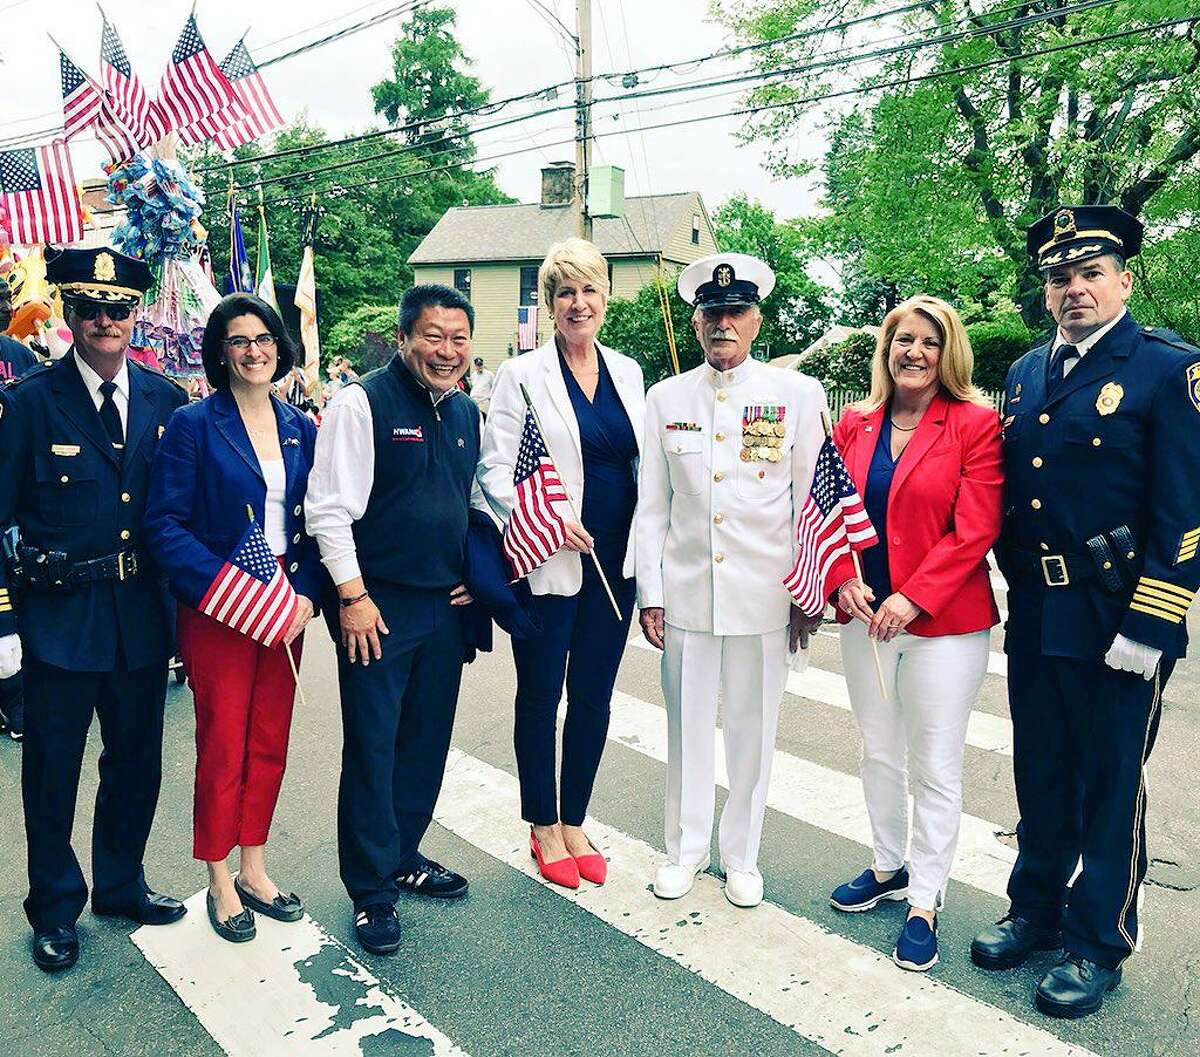 File photo from Fairfield's Memorial Day parade in 2018.